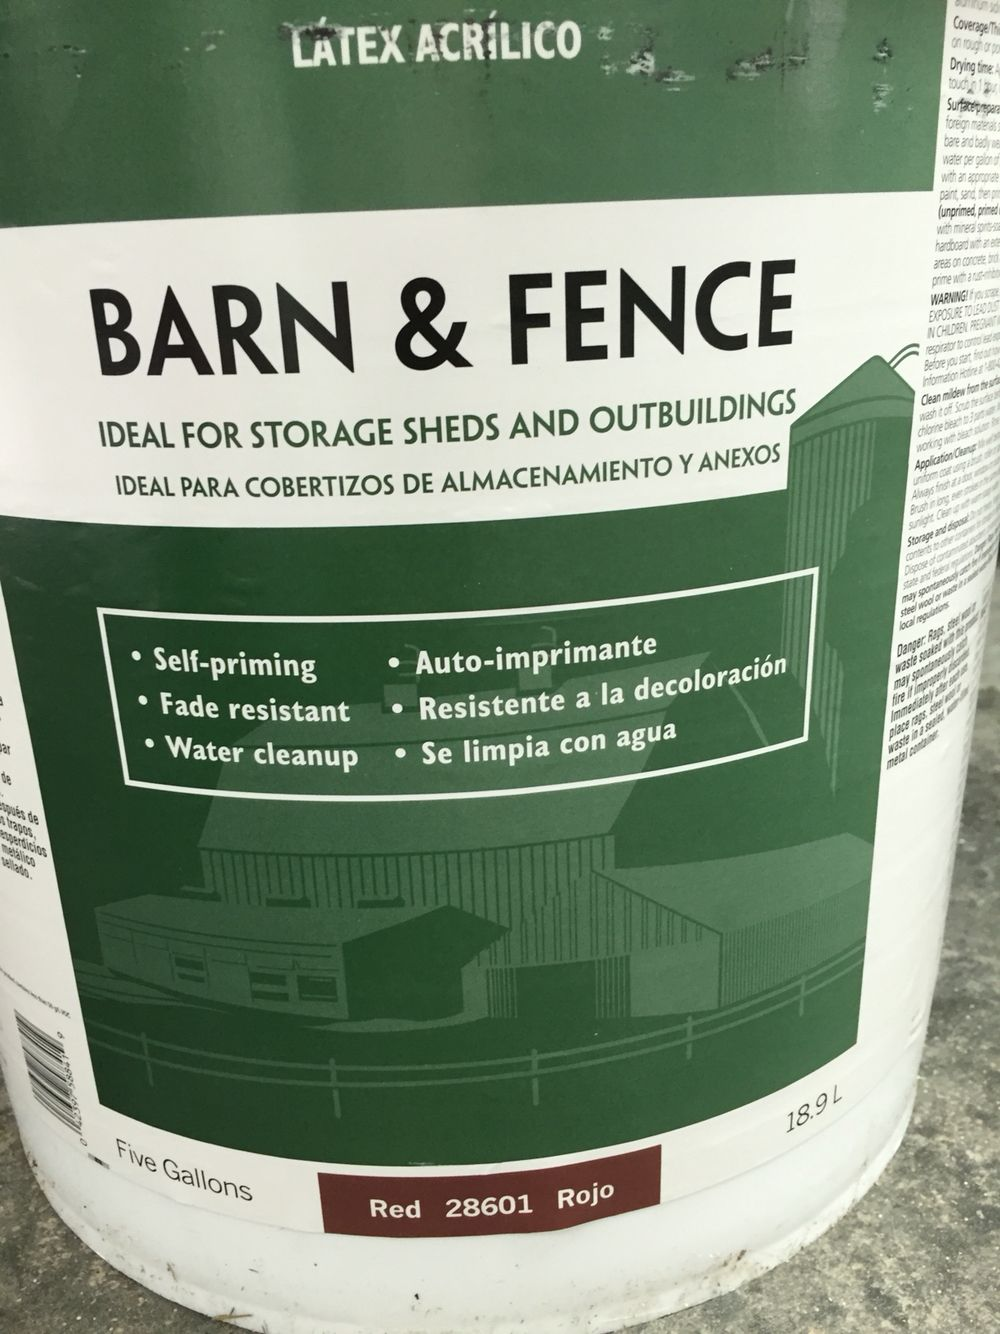 Valspar Barn And Fence Paint In Red 28601 The Color We